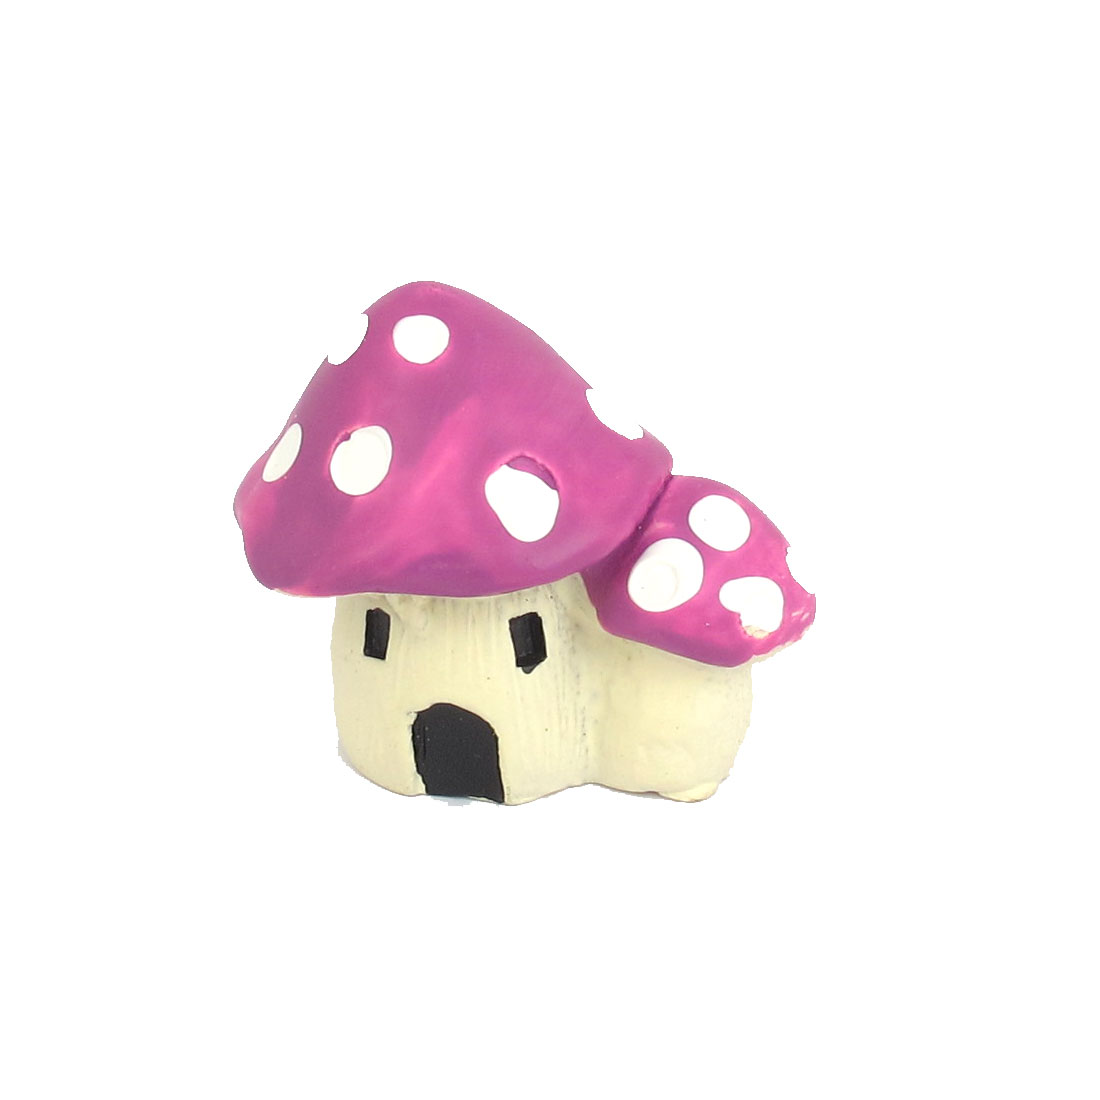 "1.2"" Height White Purple Ceramic Artificial Mushroom Aquarium Ornament for Fish Tank Aquarium"